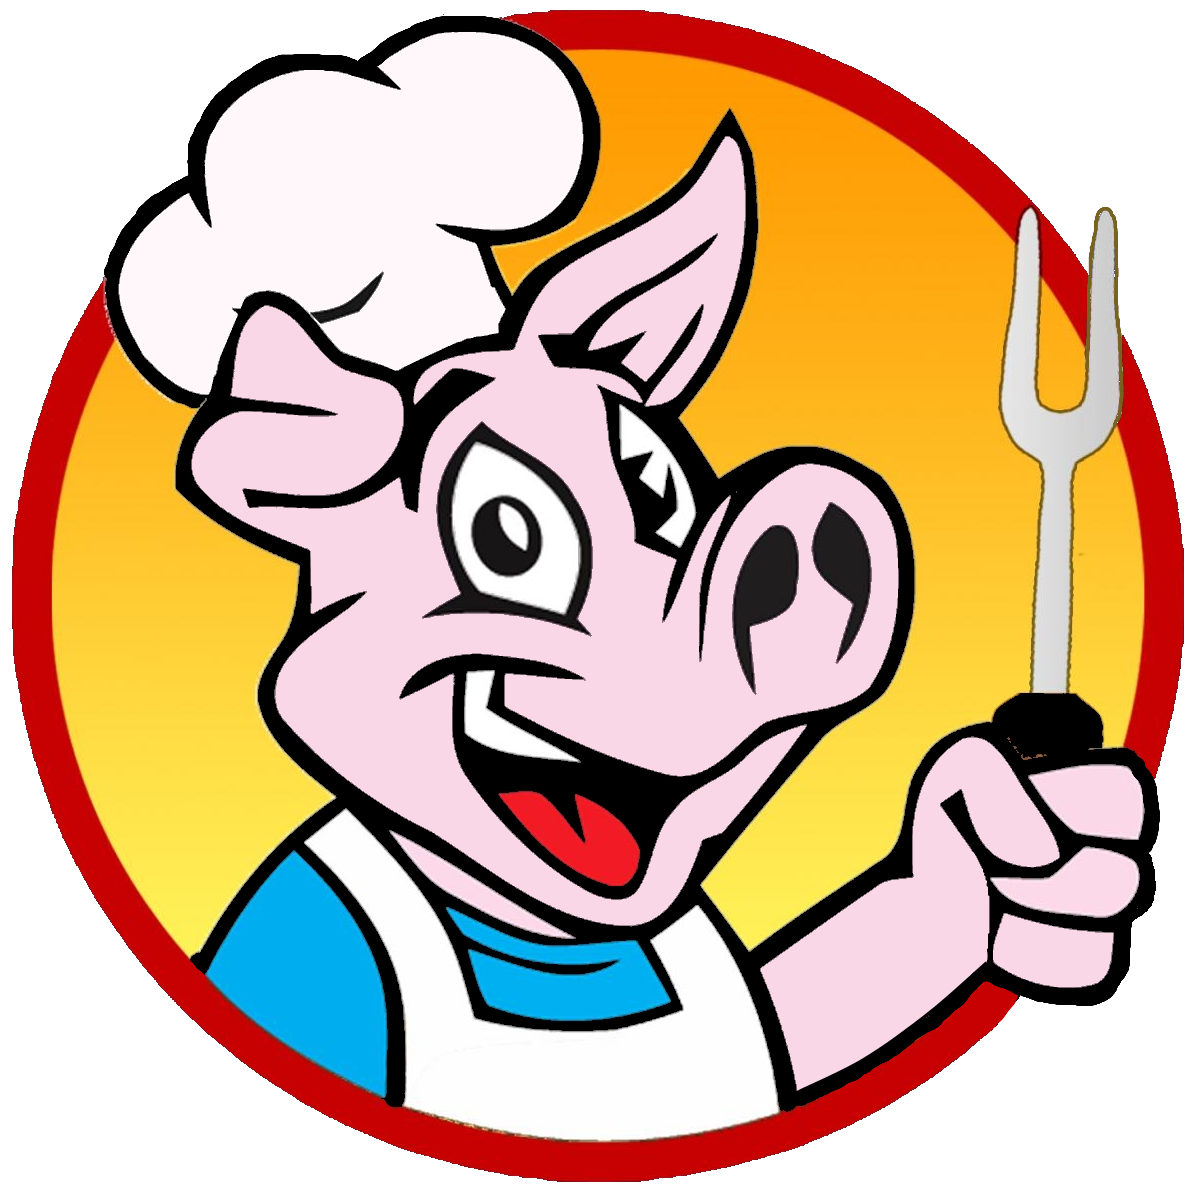 clip art library download Barbecue Pig PNG Transparent Barbecue Pig